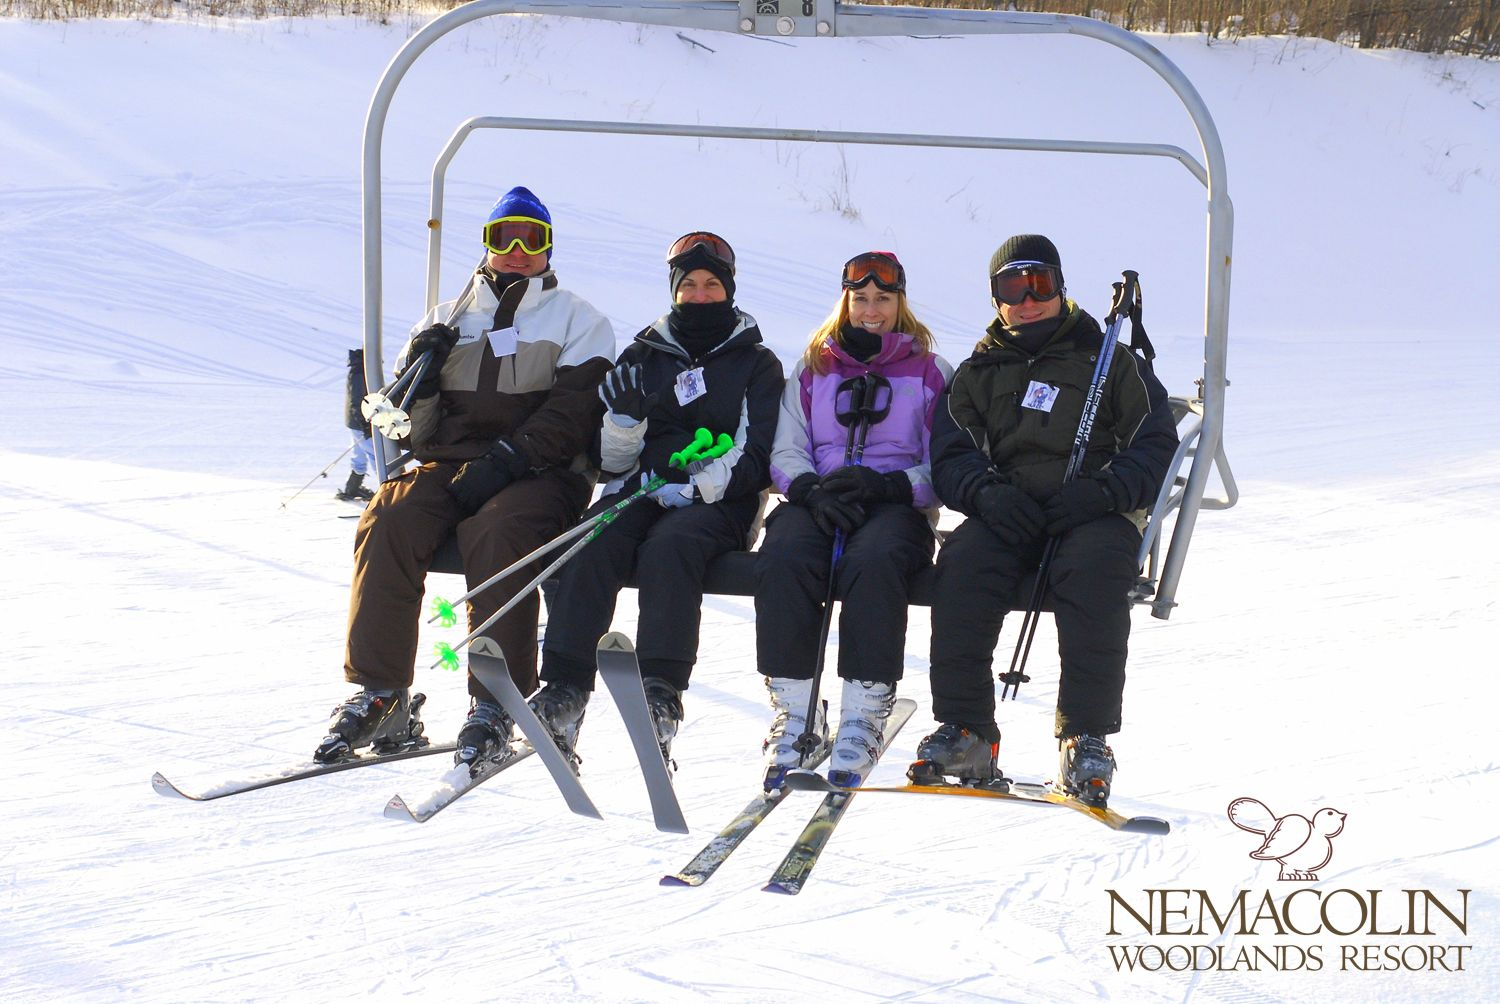 Ski Nemacolin S Mystic Mountain A Great Learning Environment Skiing Fun Winter Activities Snow Sports